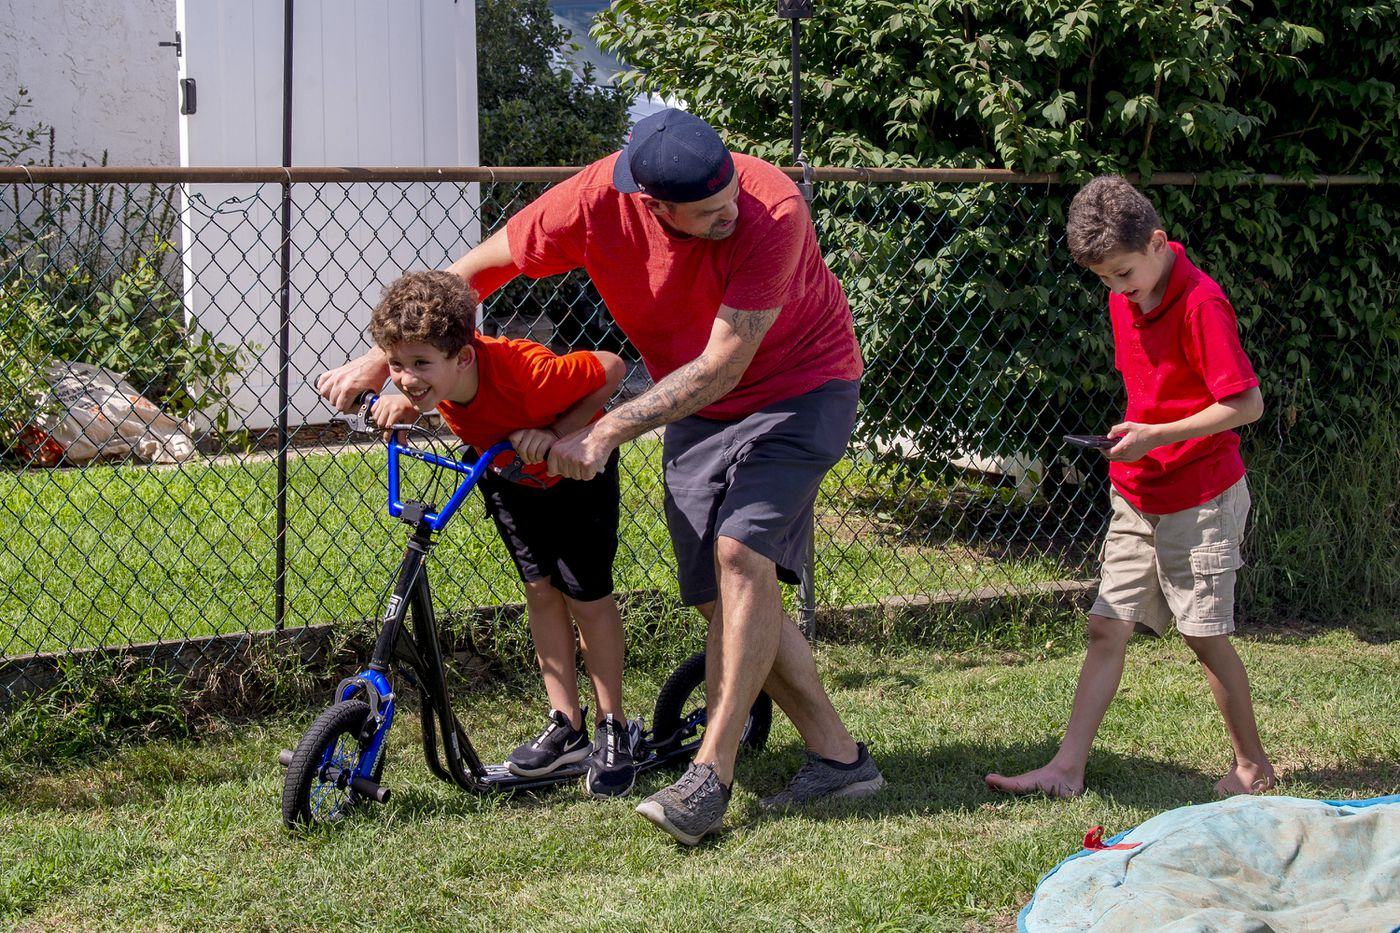 John Barchard helps his partner's son Crosby Akkawi, 8, ride his scooter in the backyard of their Conshohocken home. Behind them is Girius Akkawi, 9. Both boys have Fragile X syndrome.